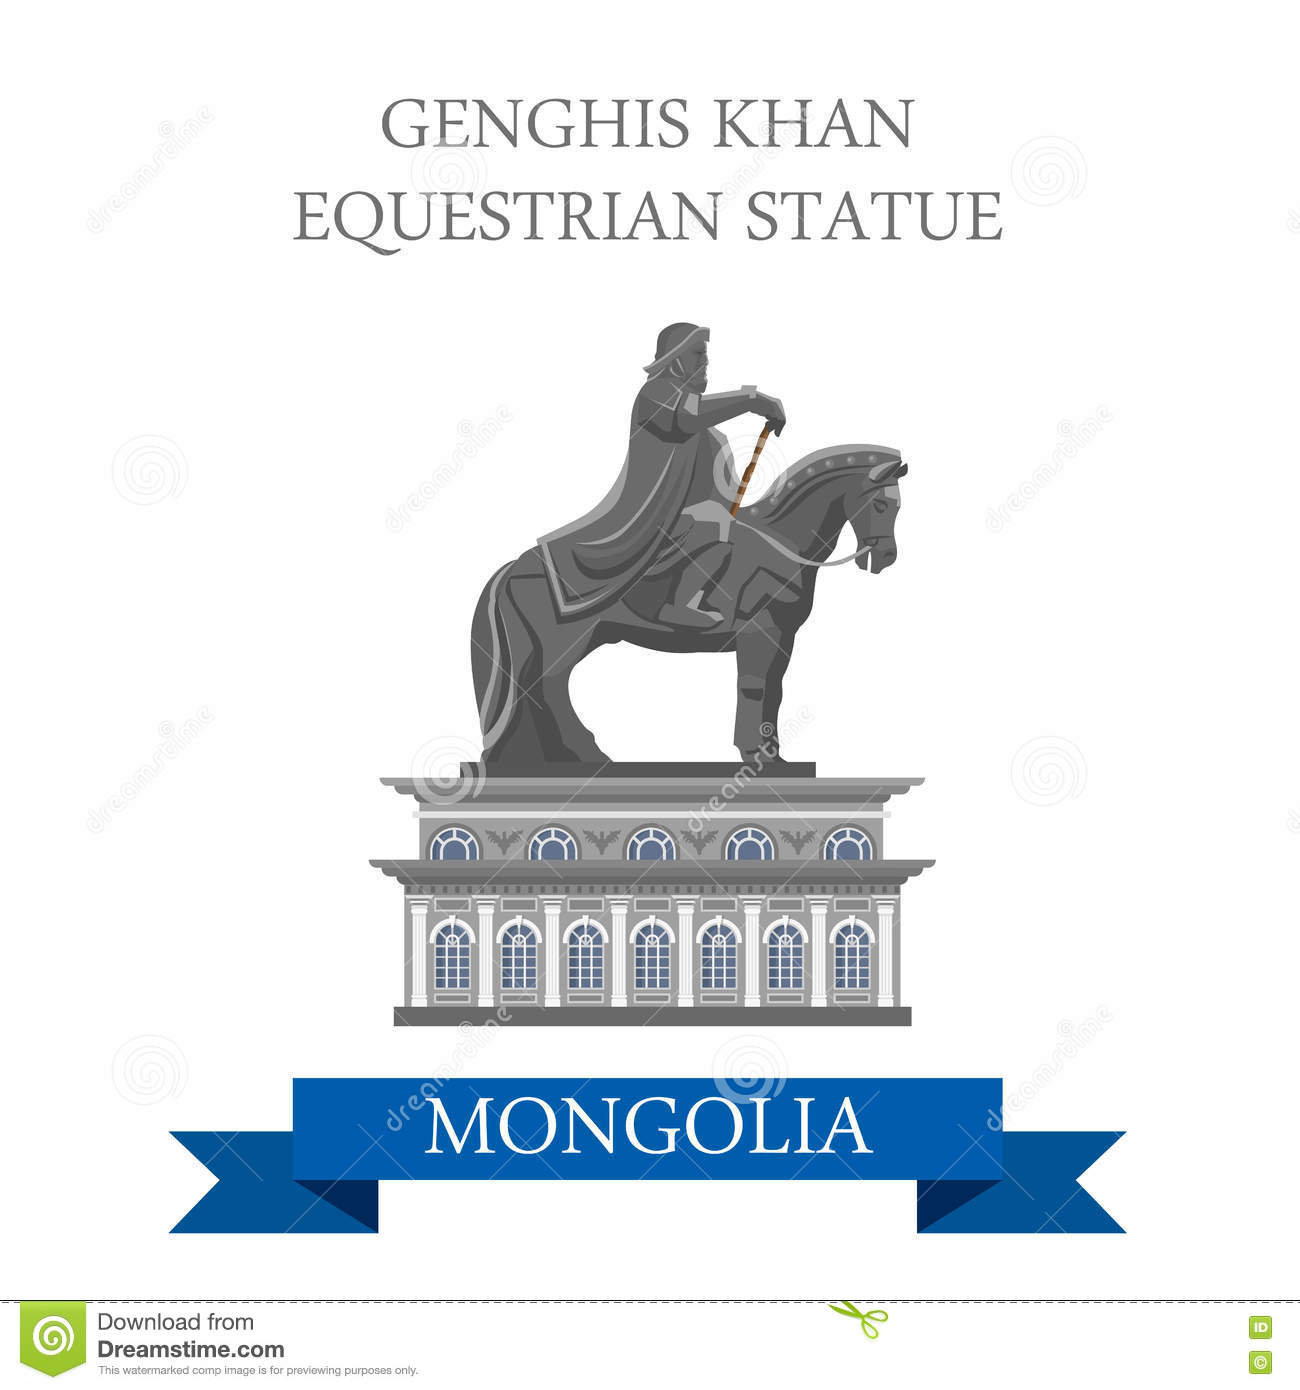 Genghis Khan Equestrian Statue Mongolia Vector Flat Attraction.